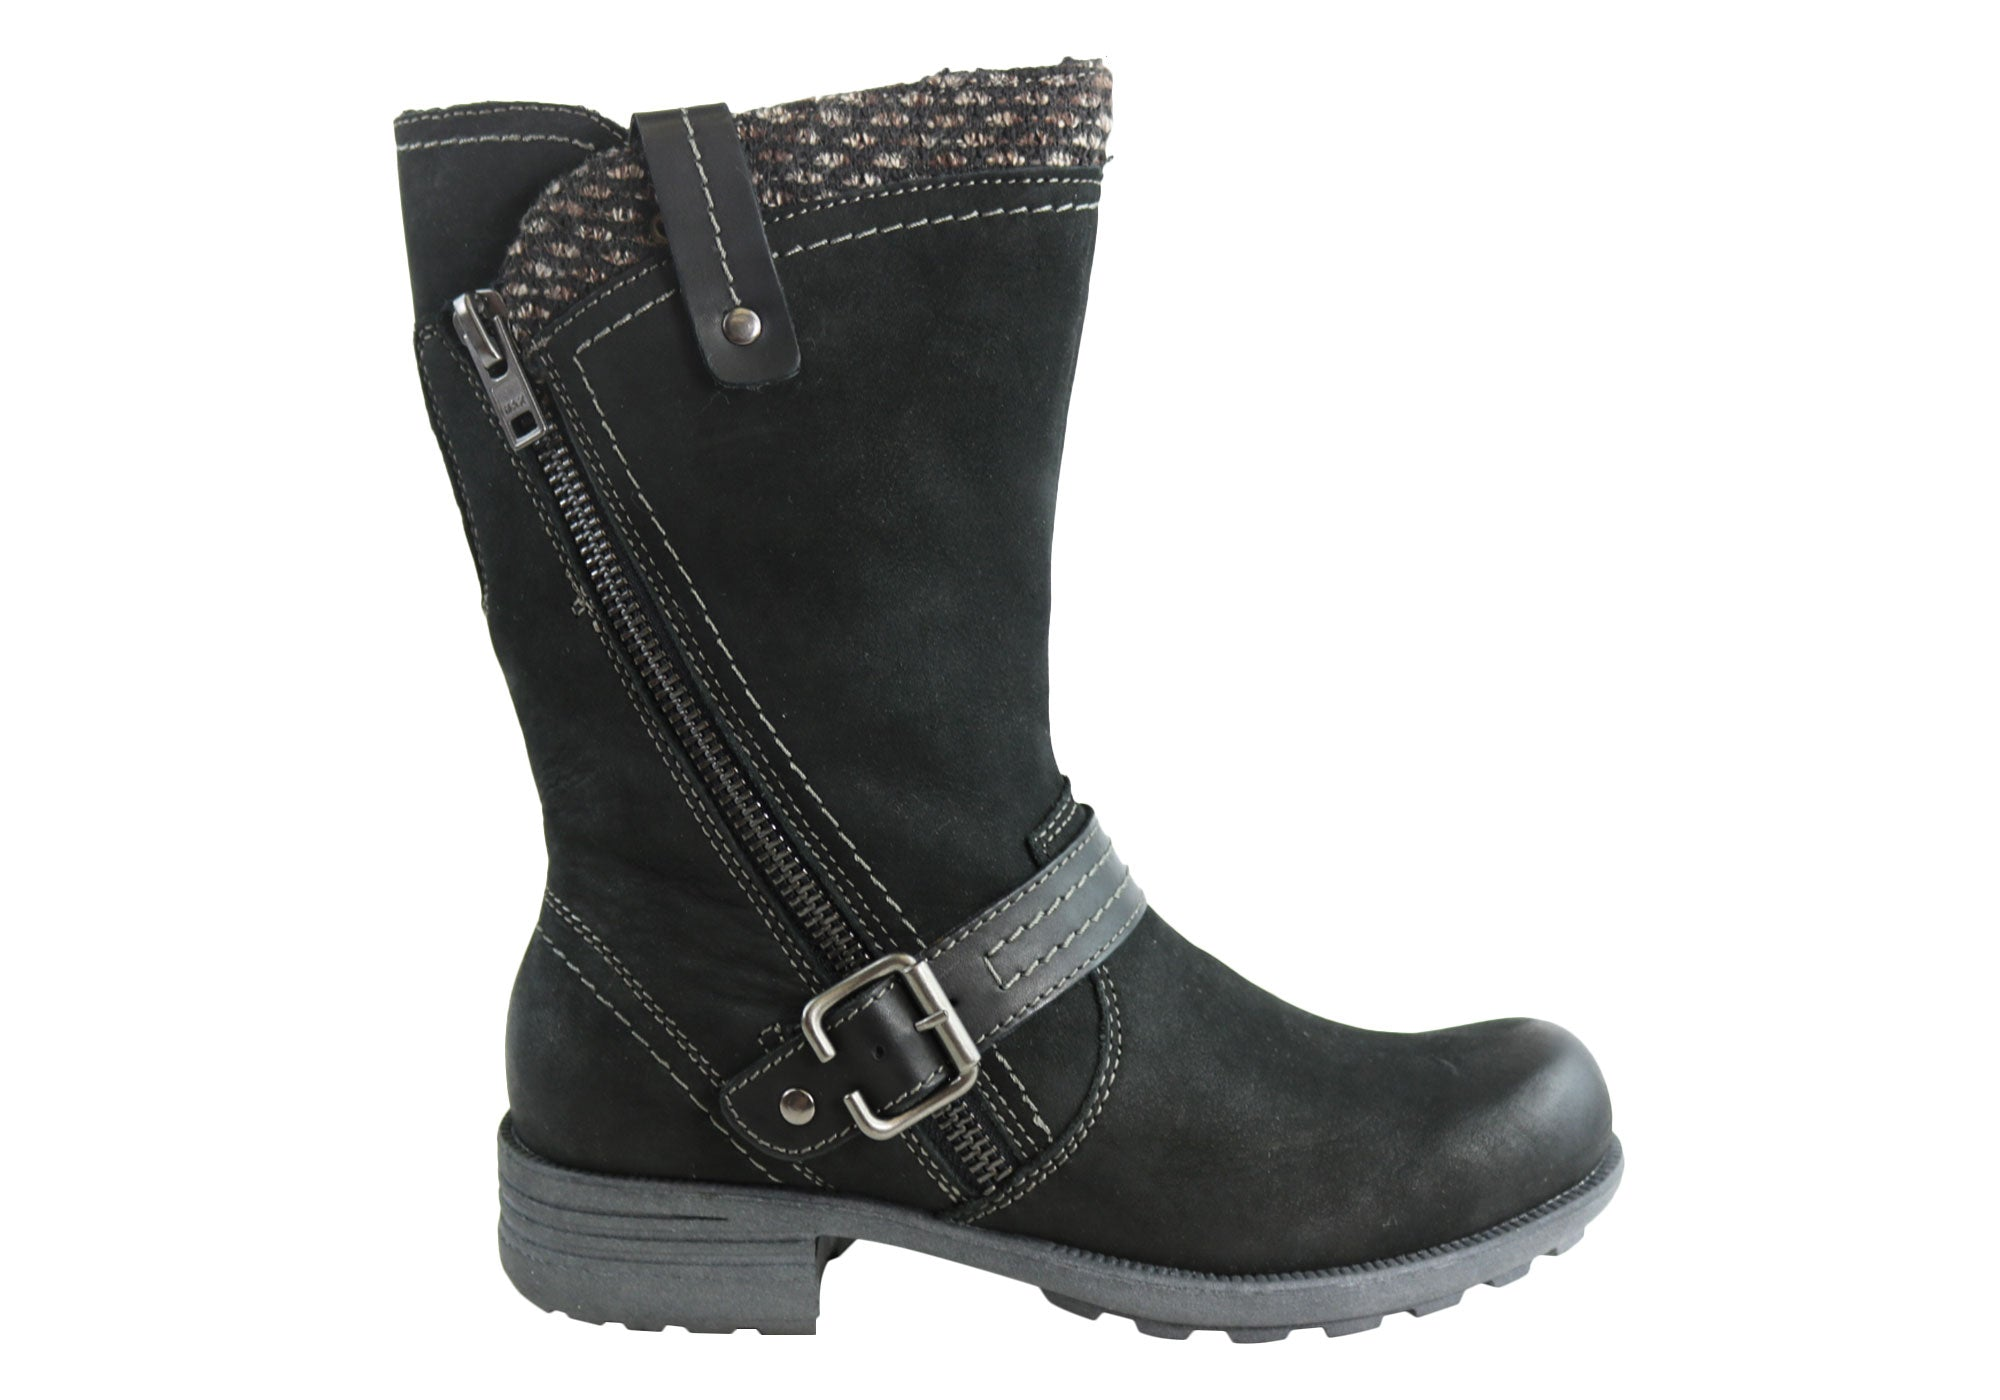 e3f34090f3d Planet Shoes Pugg & Pugg2 Womens Comfortable Leather Mid Calf Boots